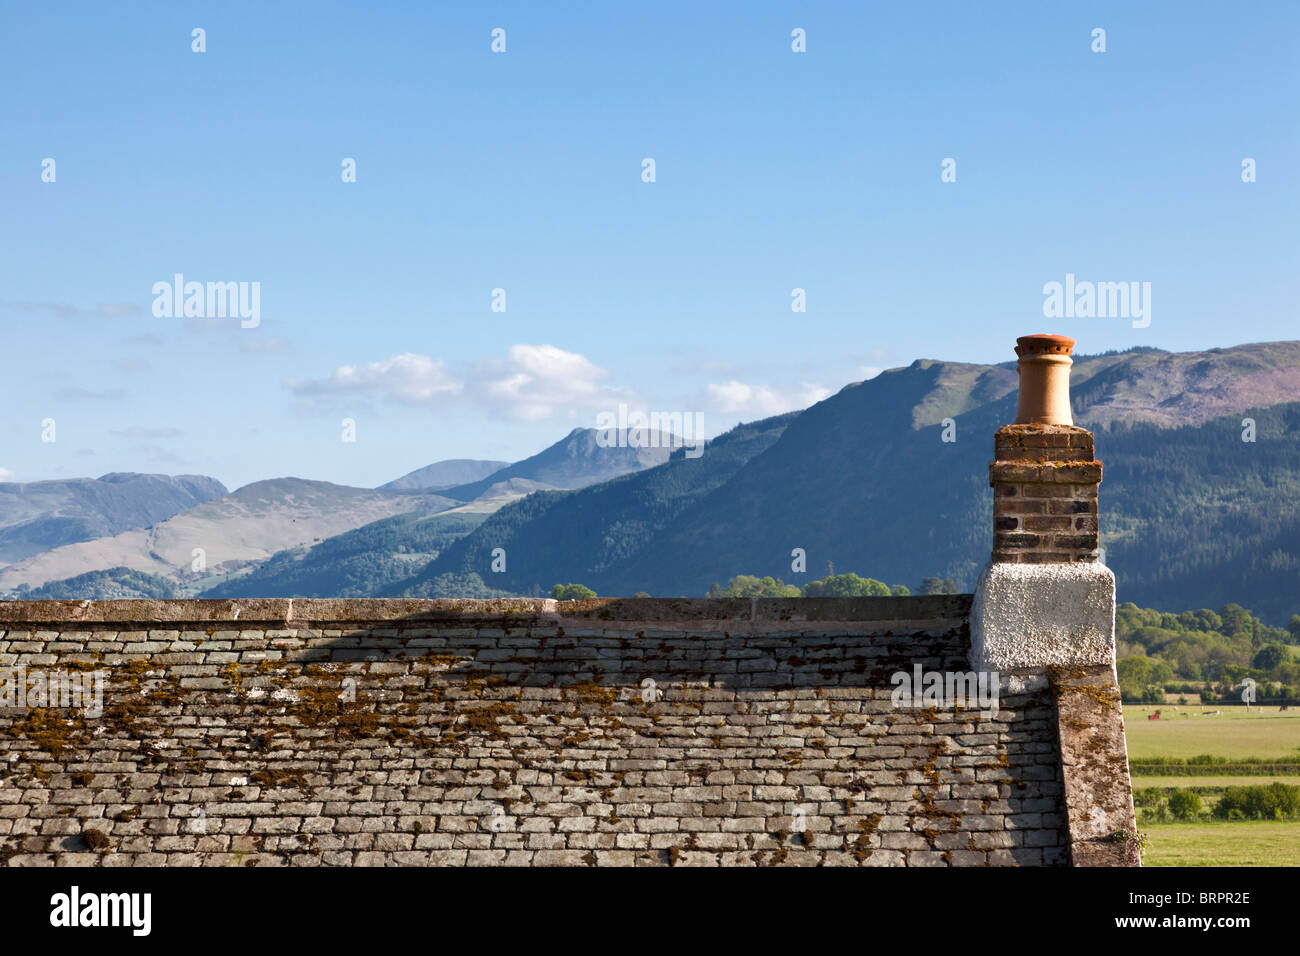 Old slate roof house roof and chimney overlooking mountains, Cumbria, England, UK - Stock Image